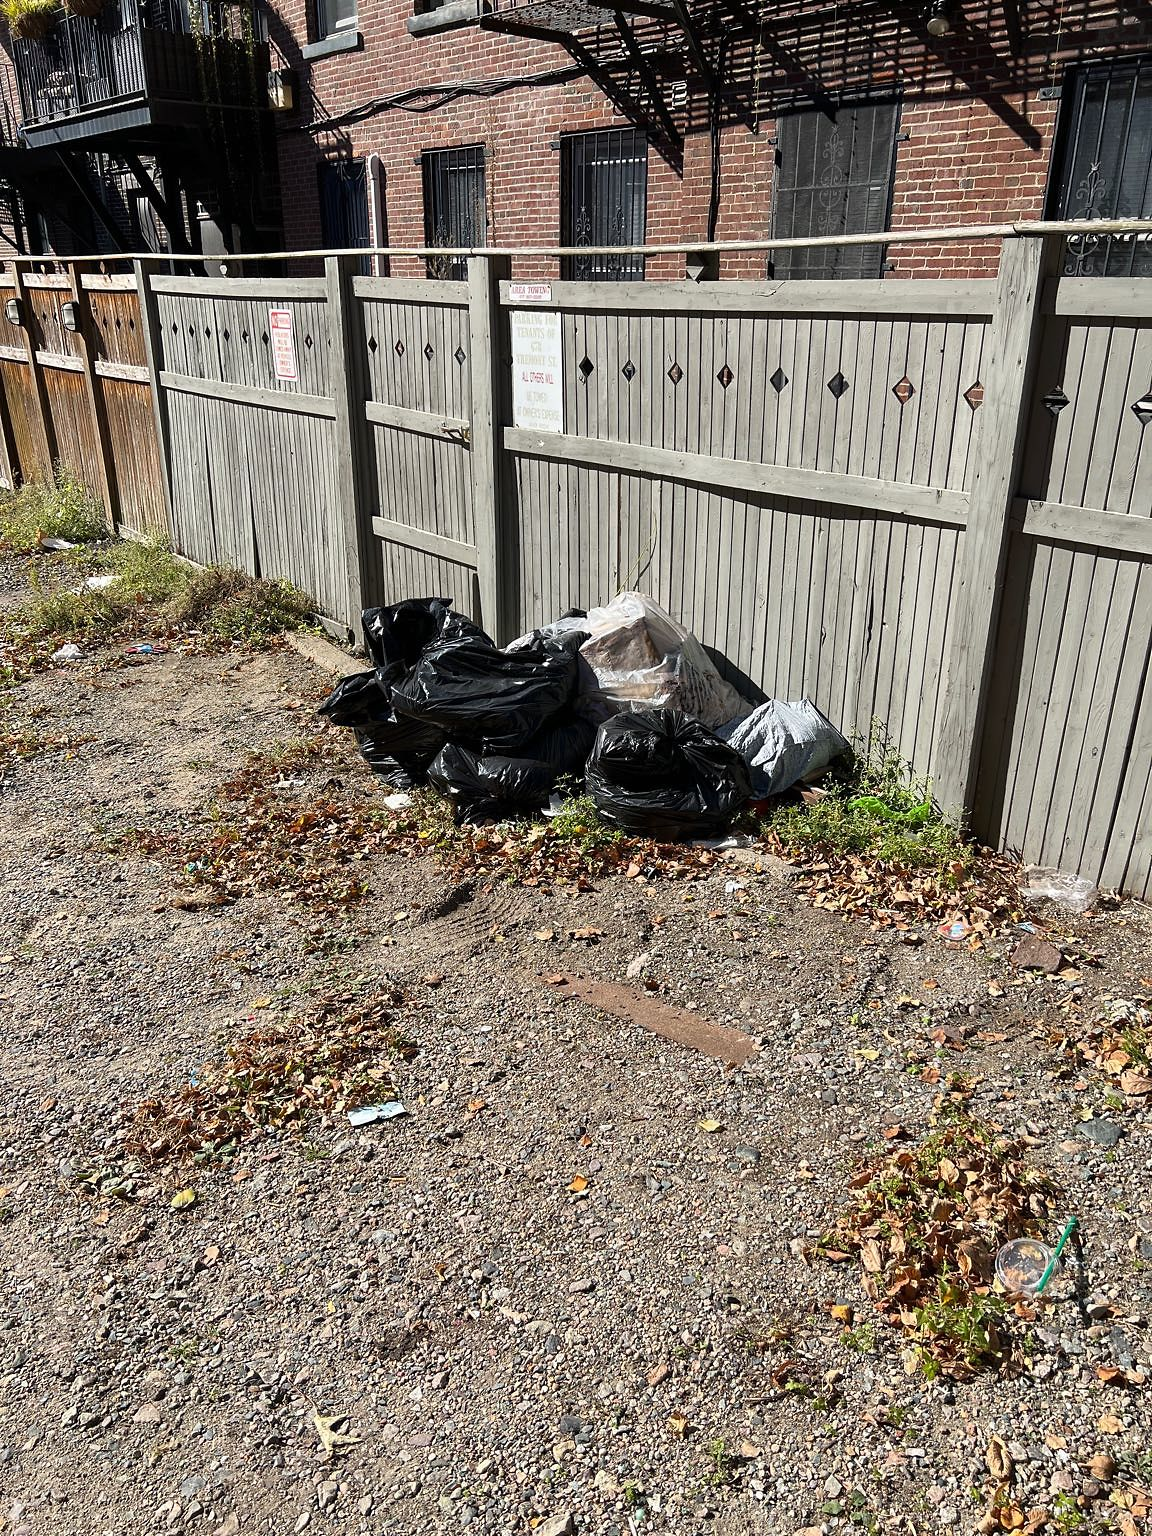 8 bags of trash have been dumped at the rear of 678 Tremont Street and have been left for 2+ weeks.